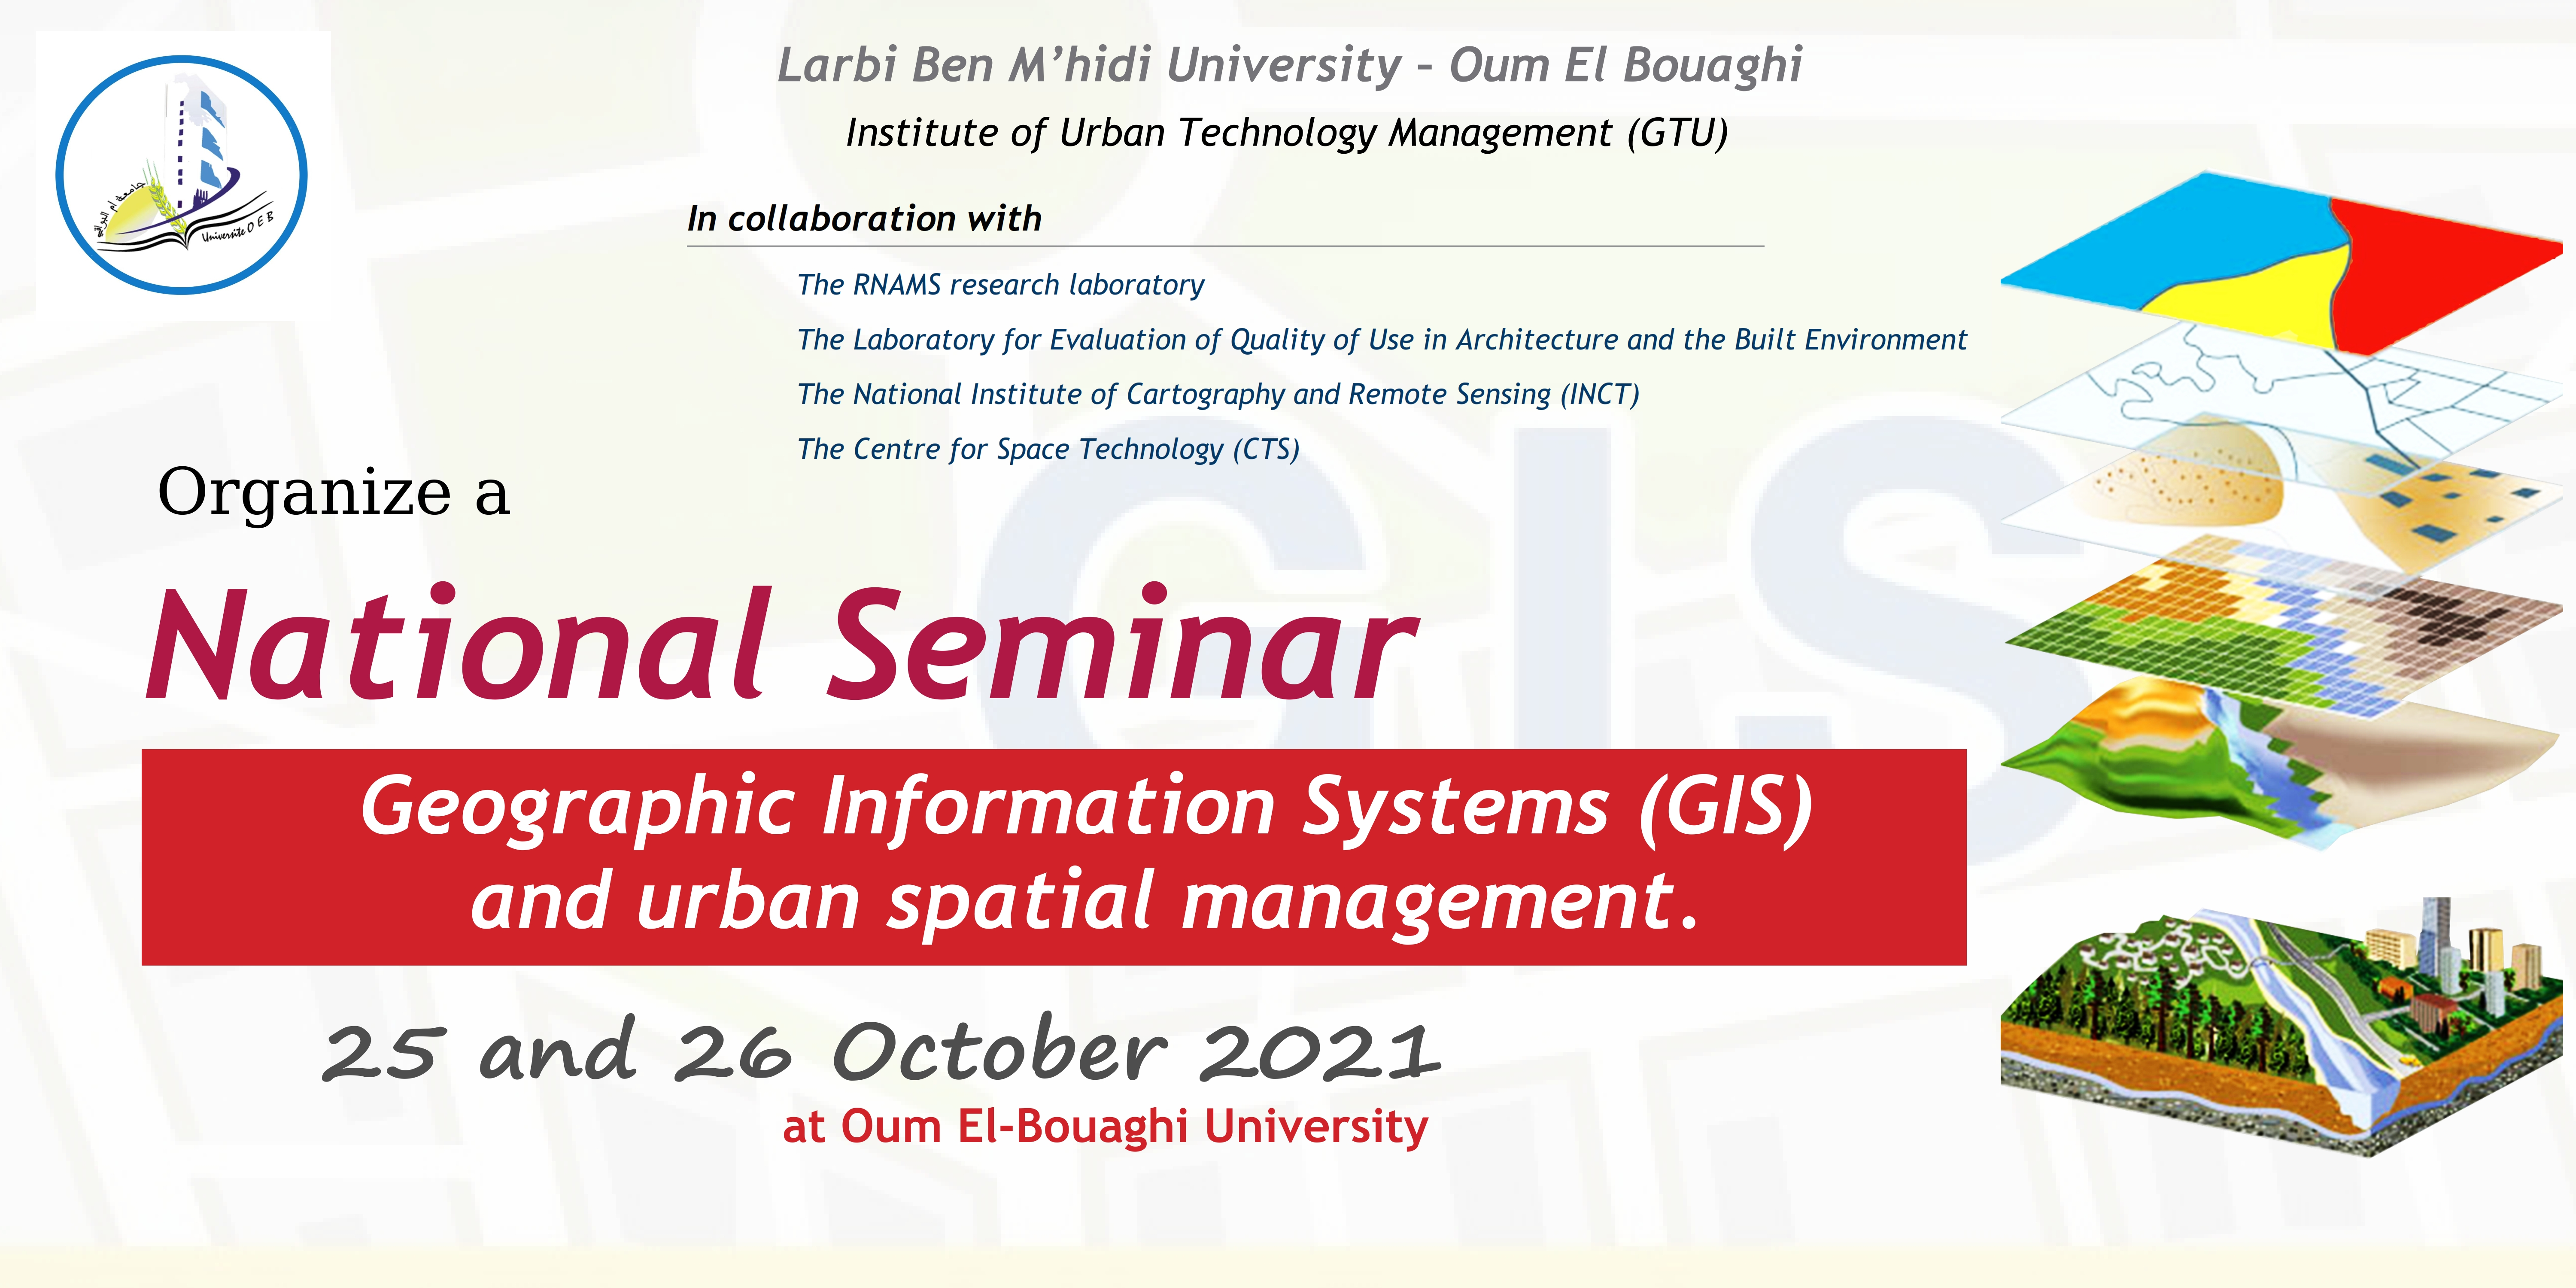 Geographic Information Systems (GIS) and urban spatial management